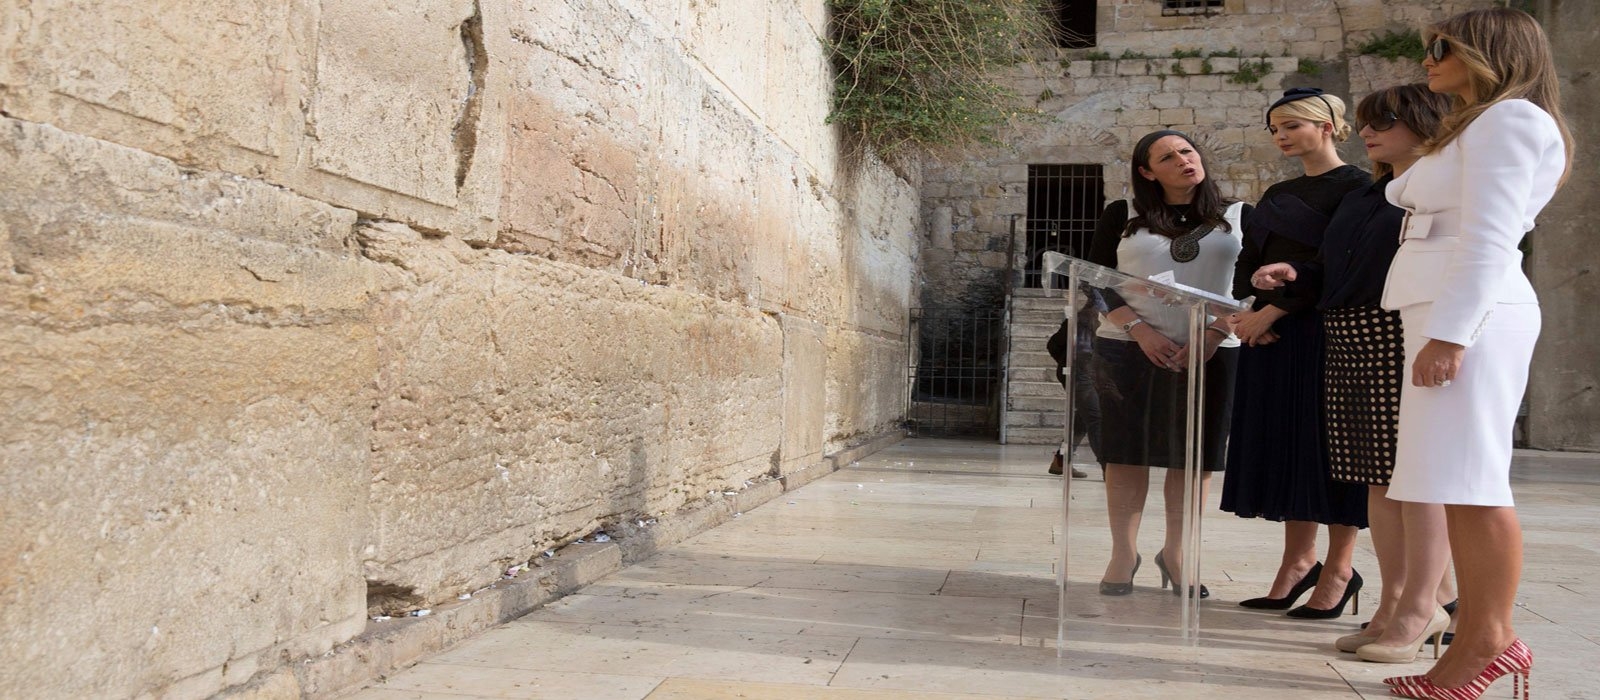 Ivanka Trump (2nd L), and First Lady Melania Trump (R) visit the Western Wall. Photo AFP